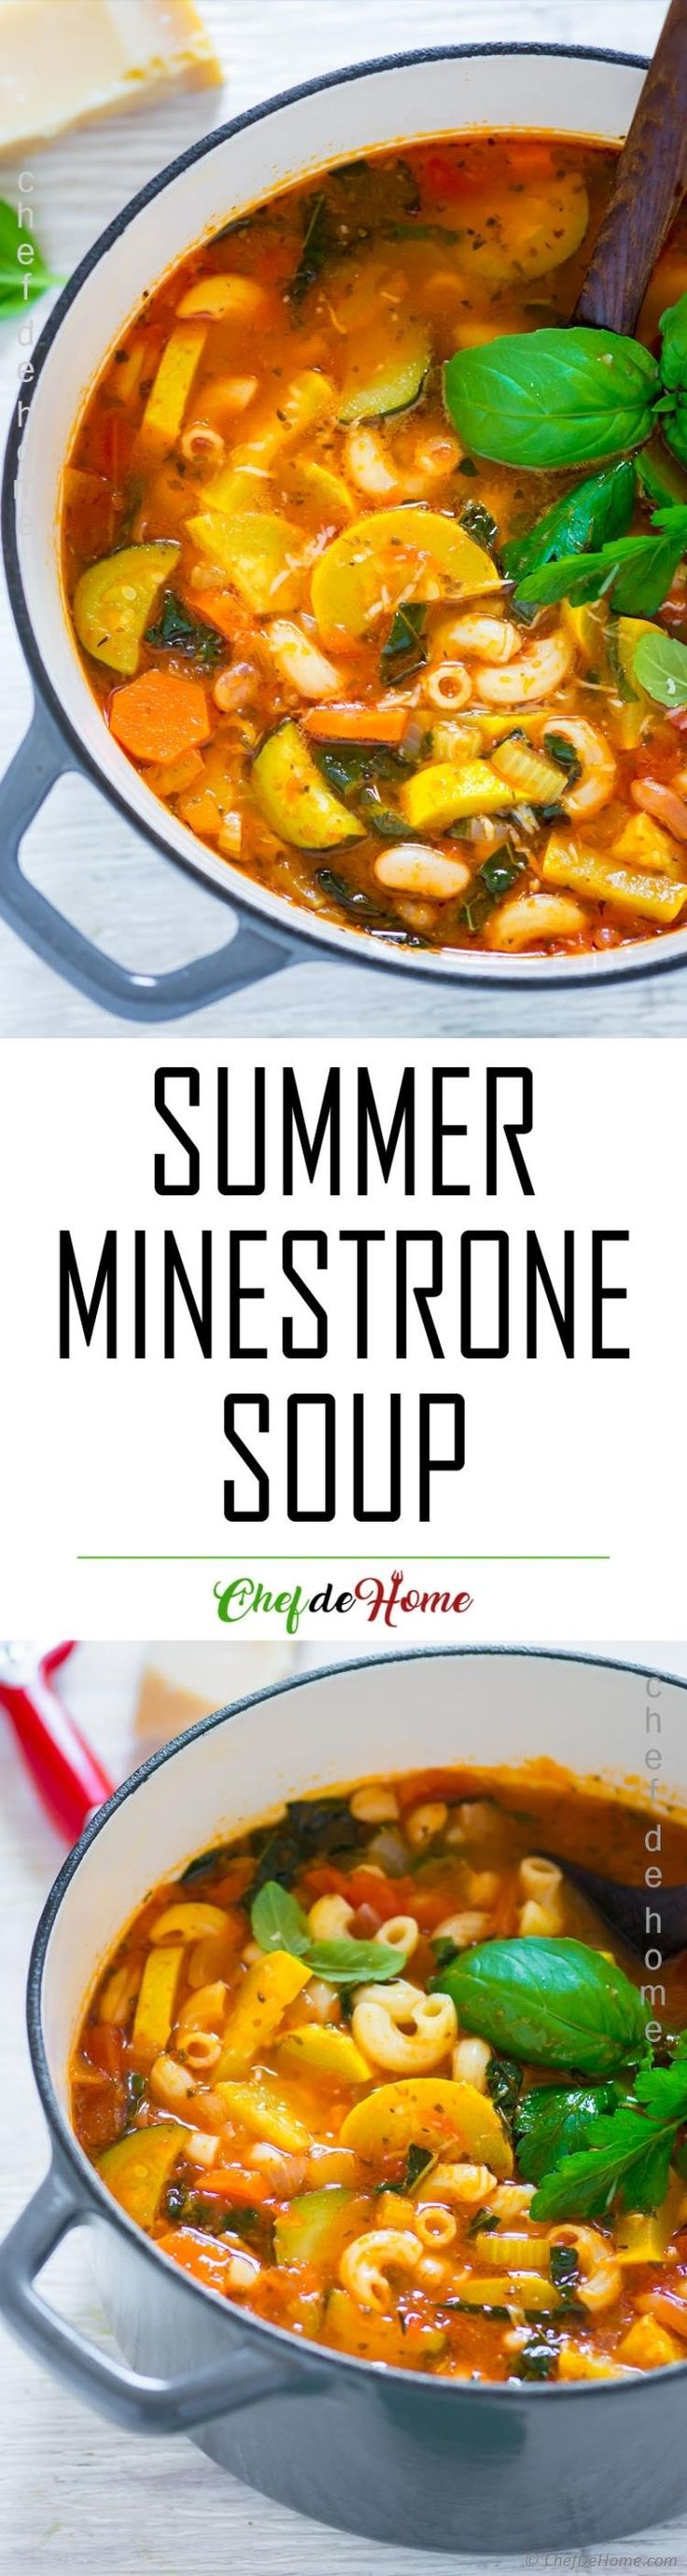 Easy Minestrone Soup with summer squash pasta and beans